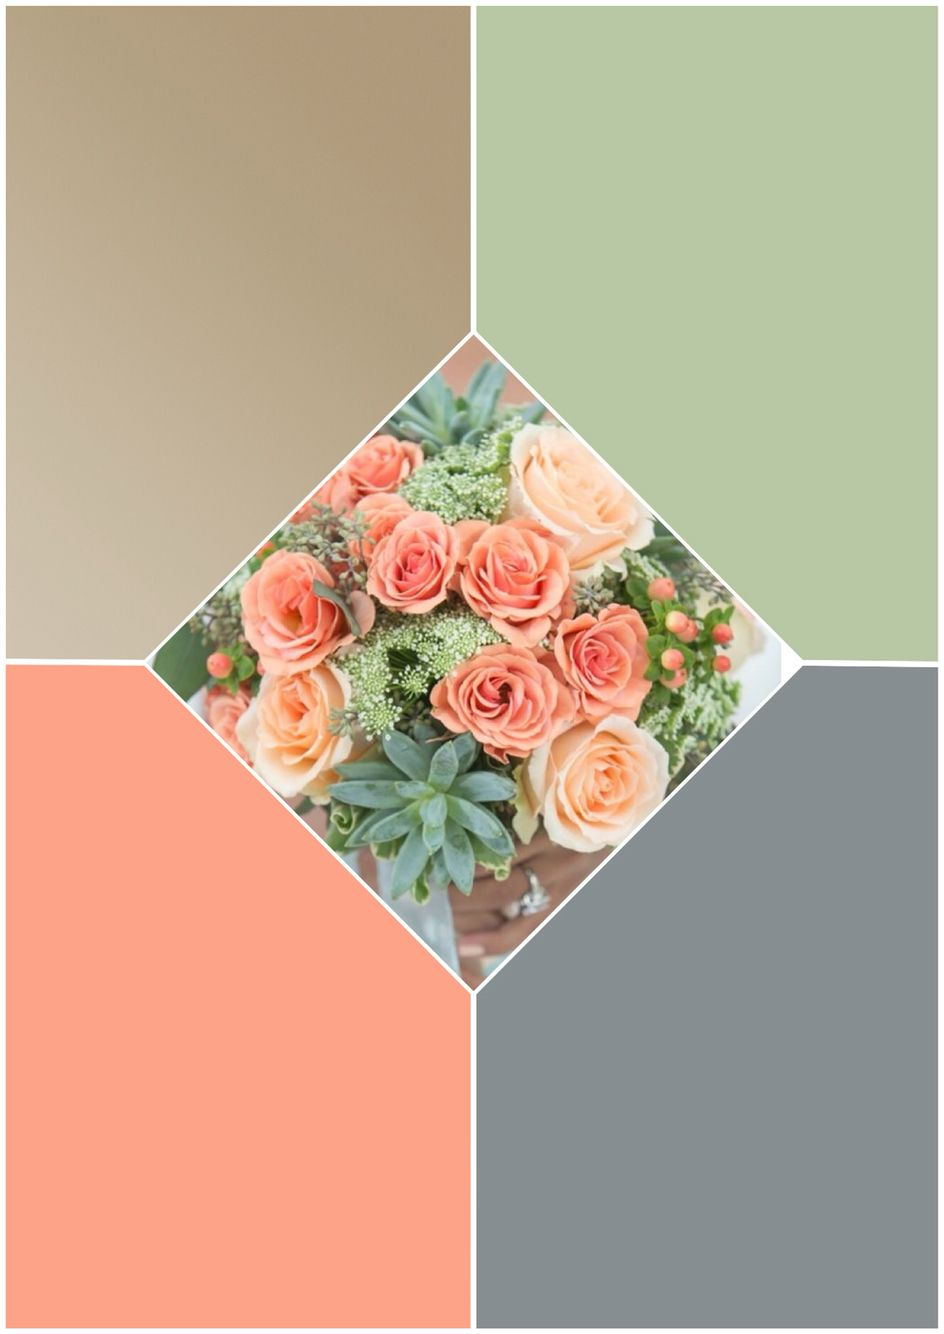 Guest room colors champagne sage green peach pewter gray - What color is sage green ...